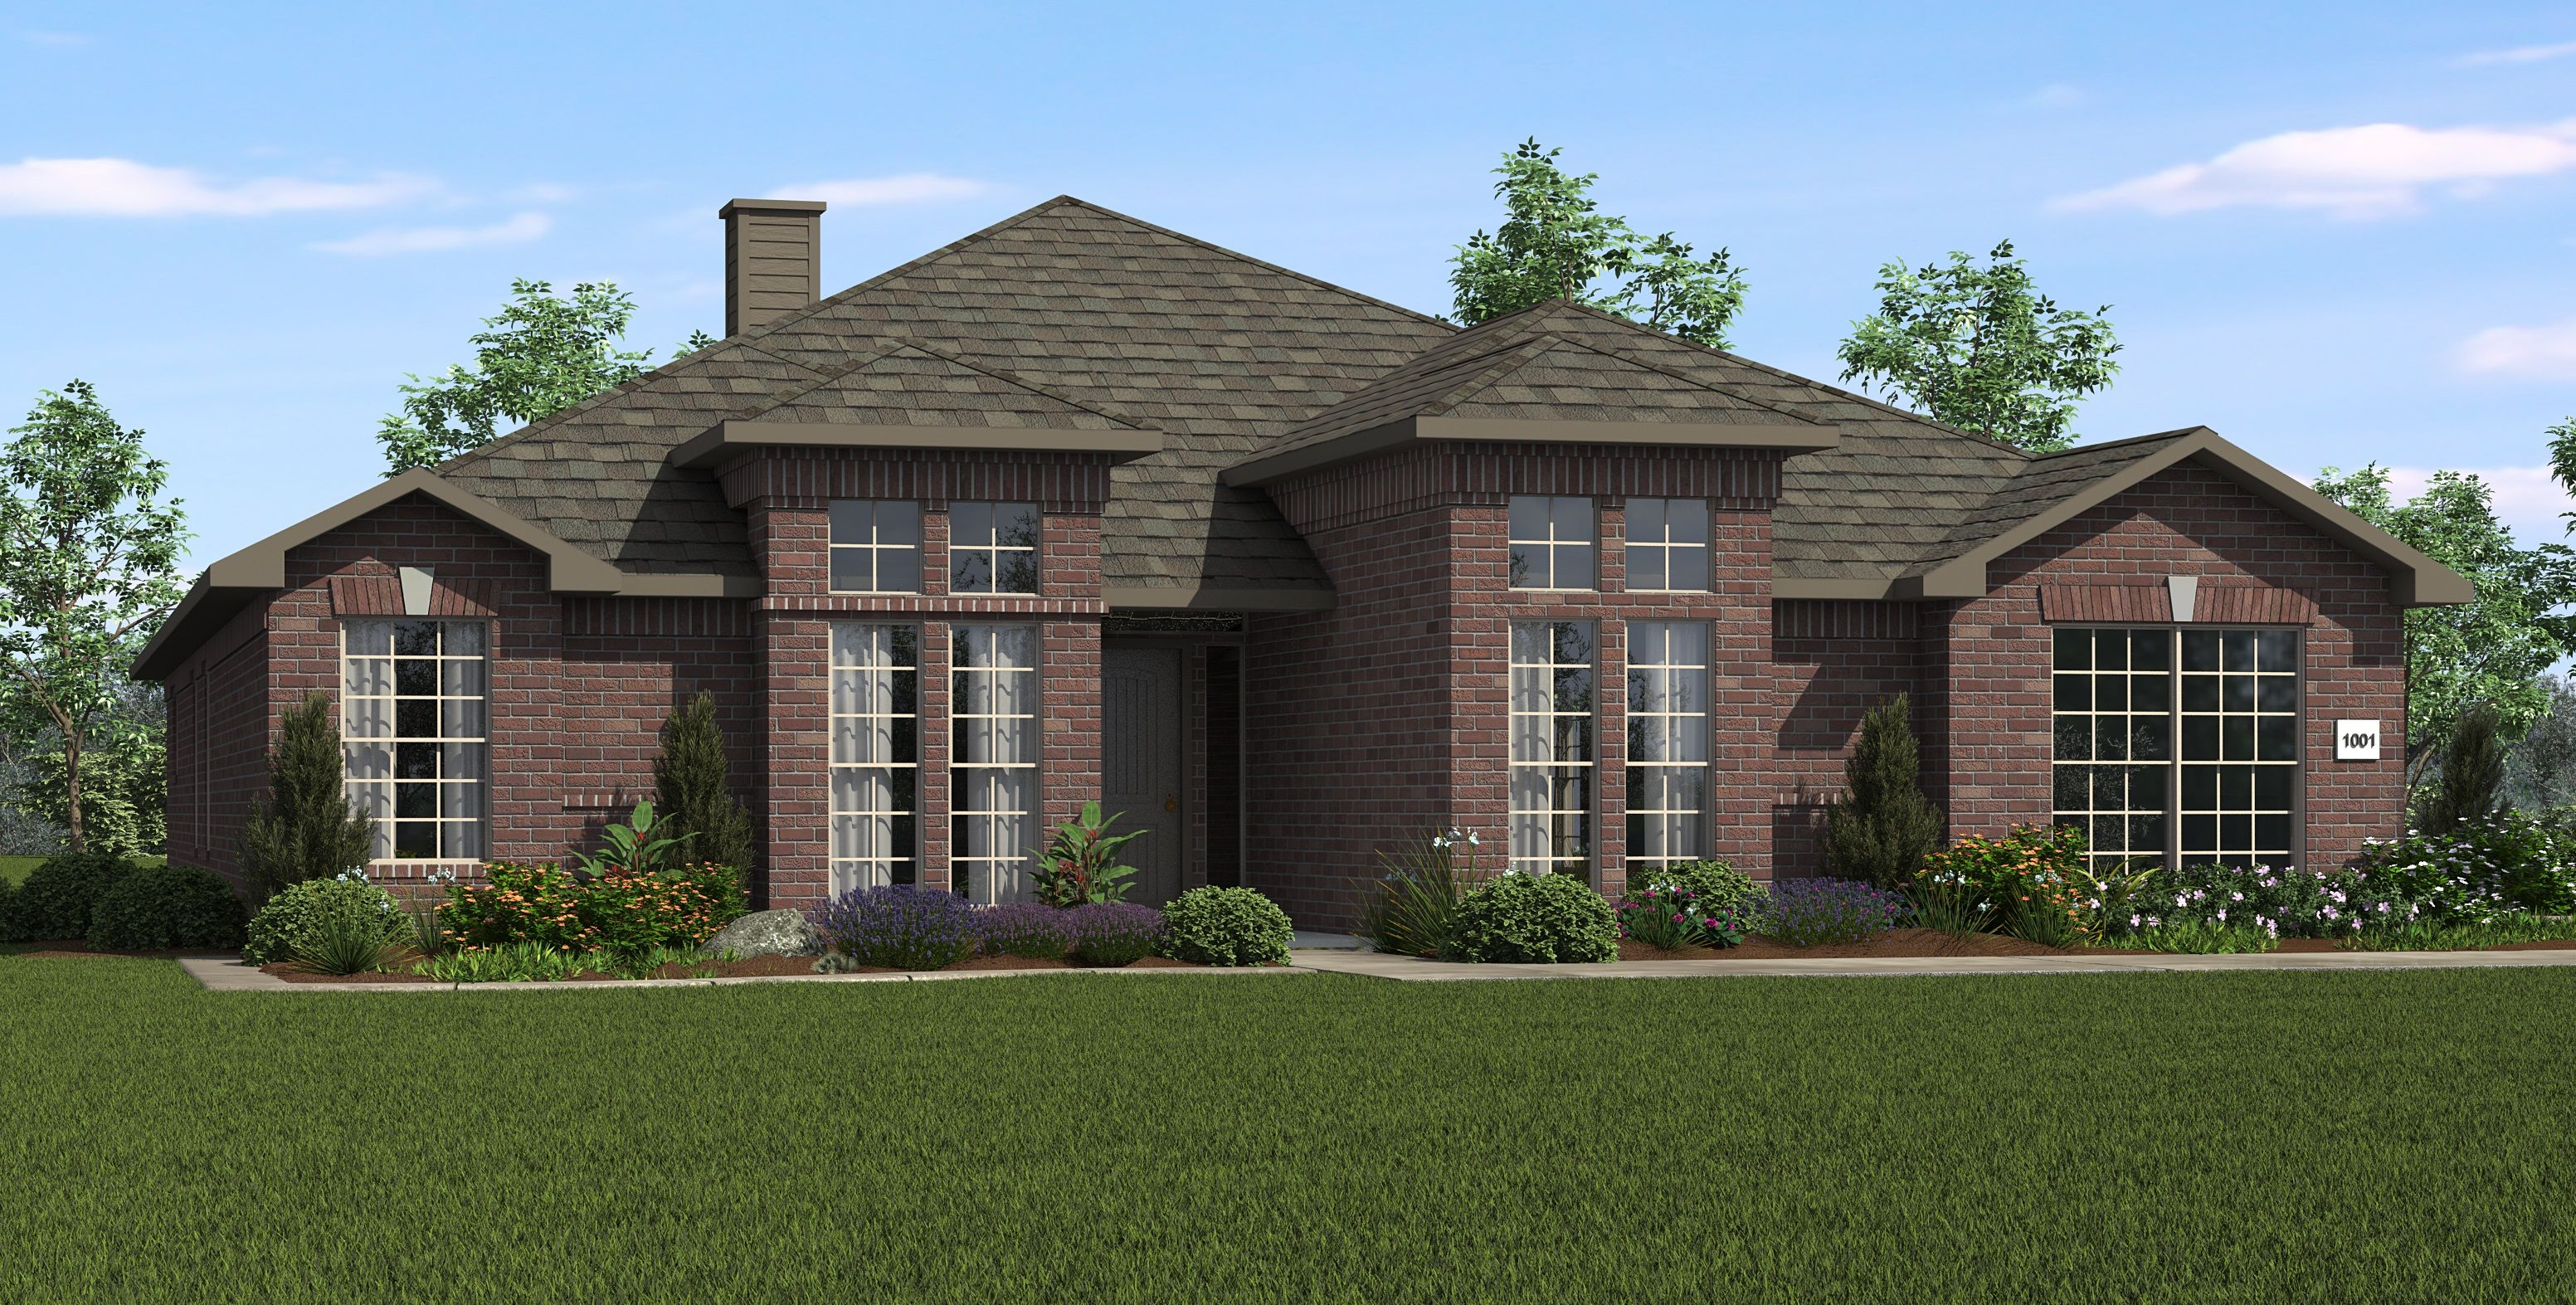 Christy schuber mitchell homes house plans pinterest for Mitchell home builders